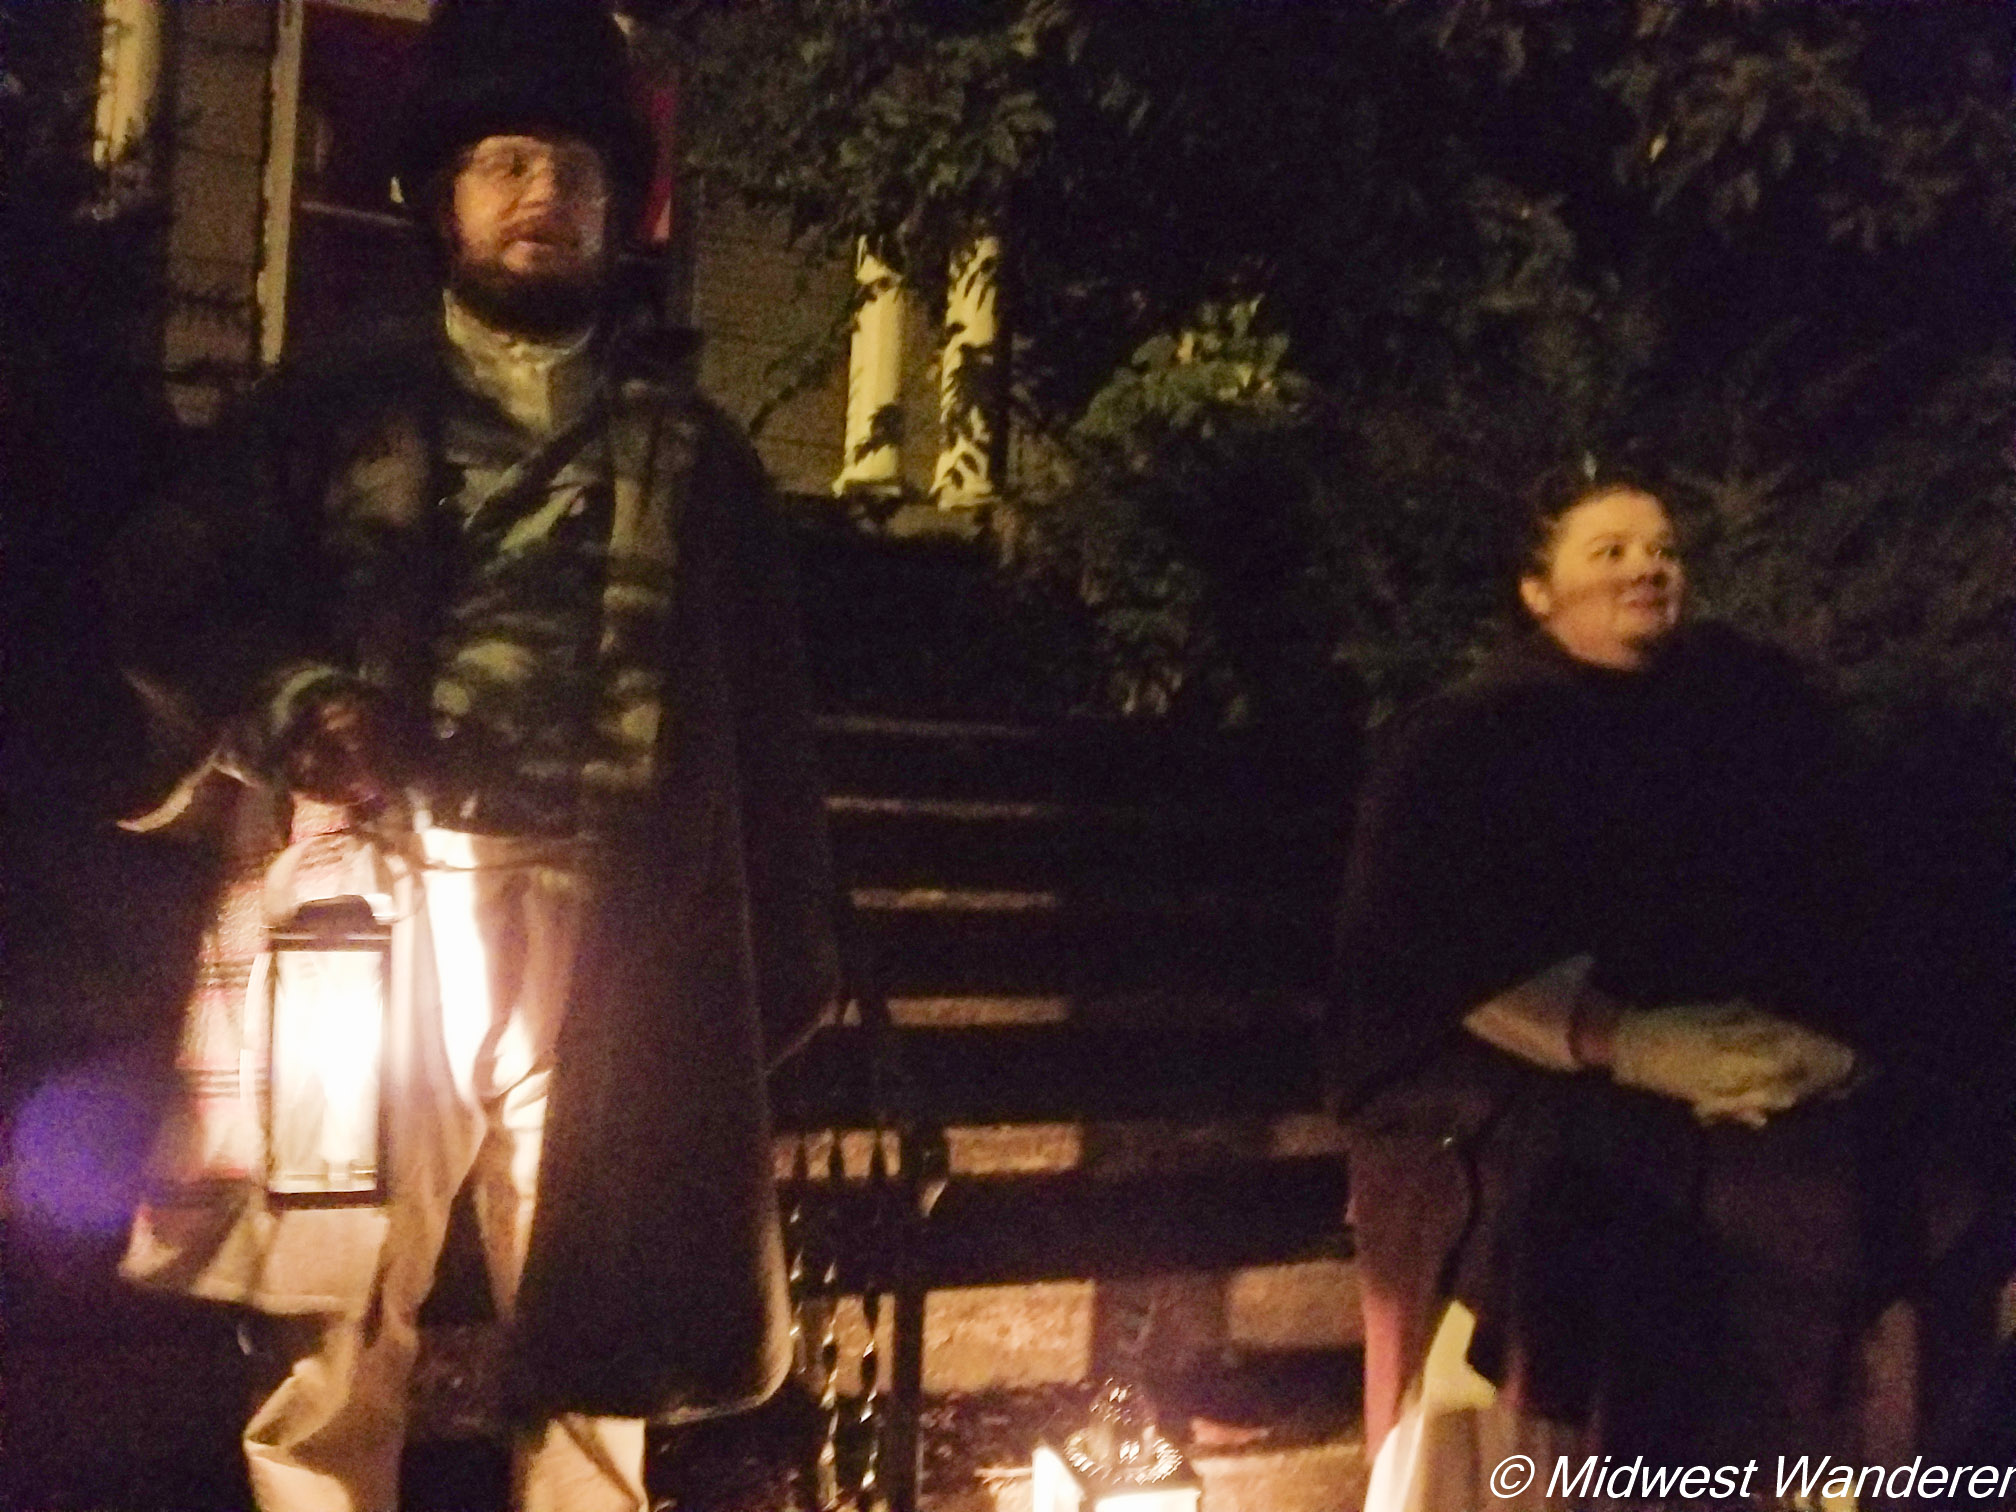 Real Haunted Happenings Tour guides